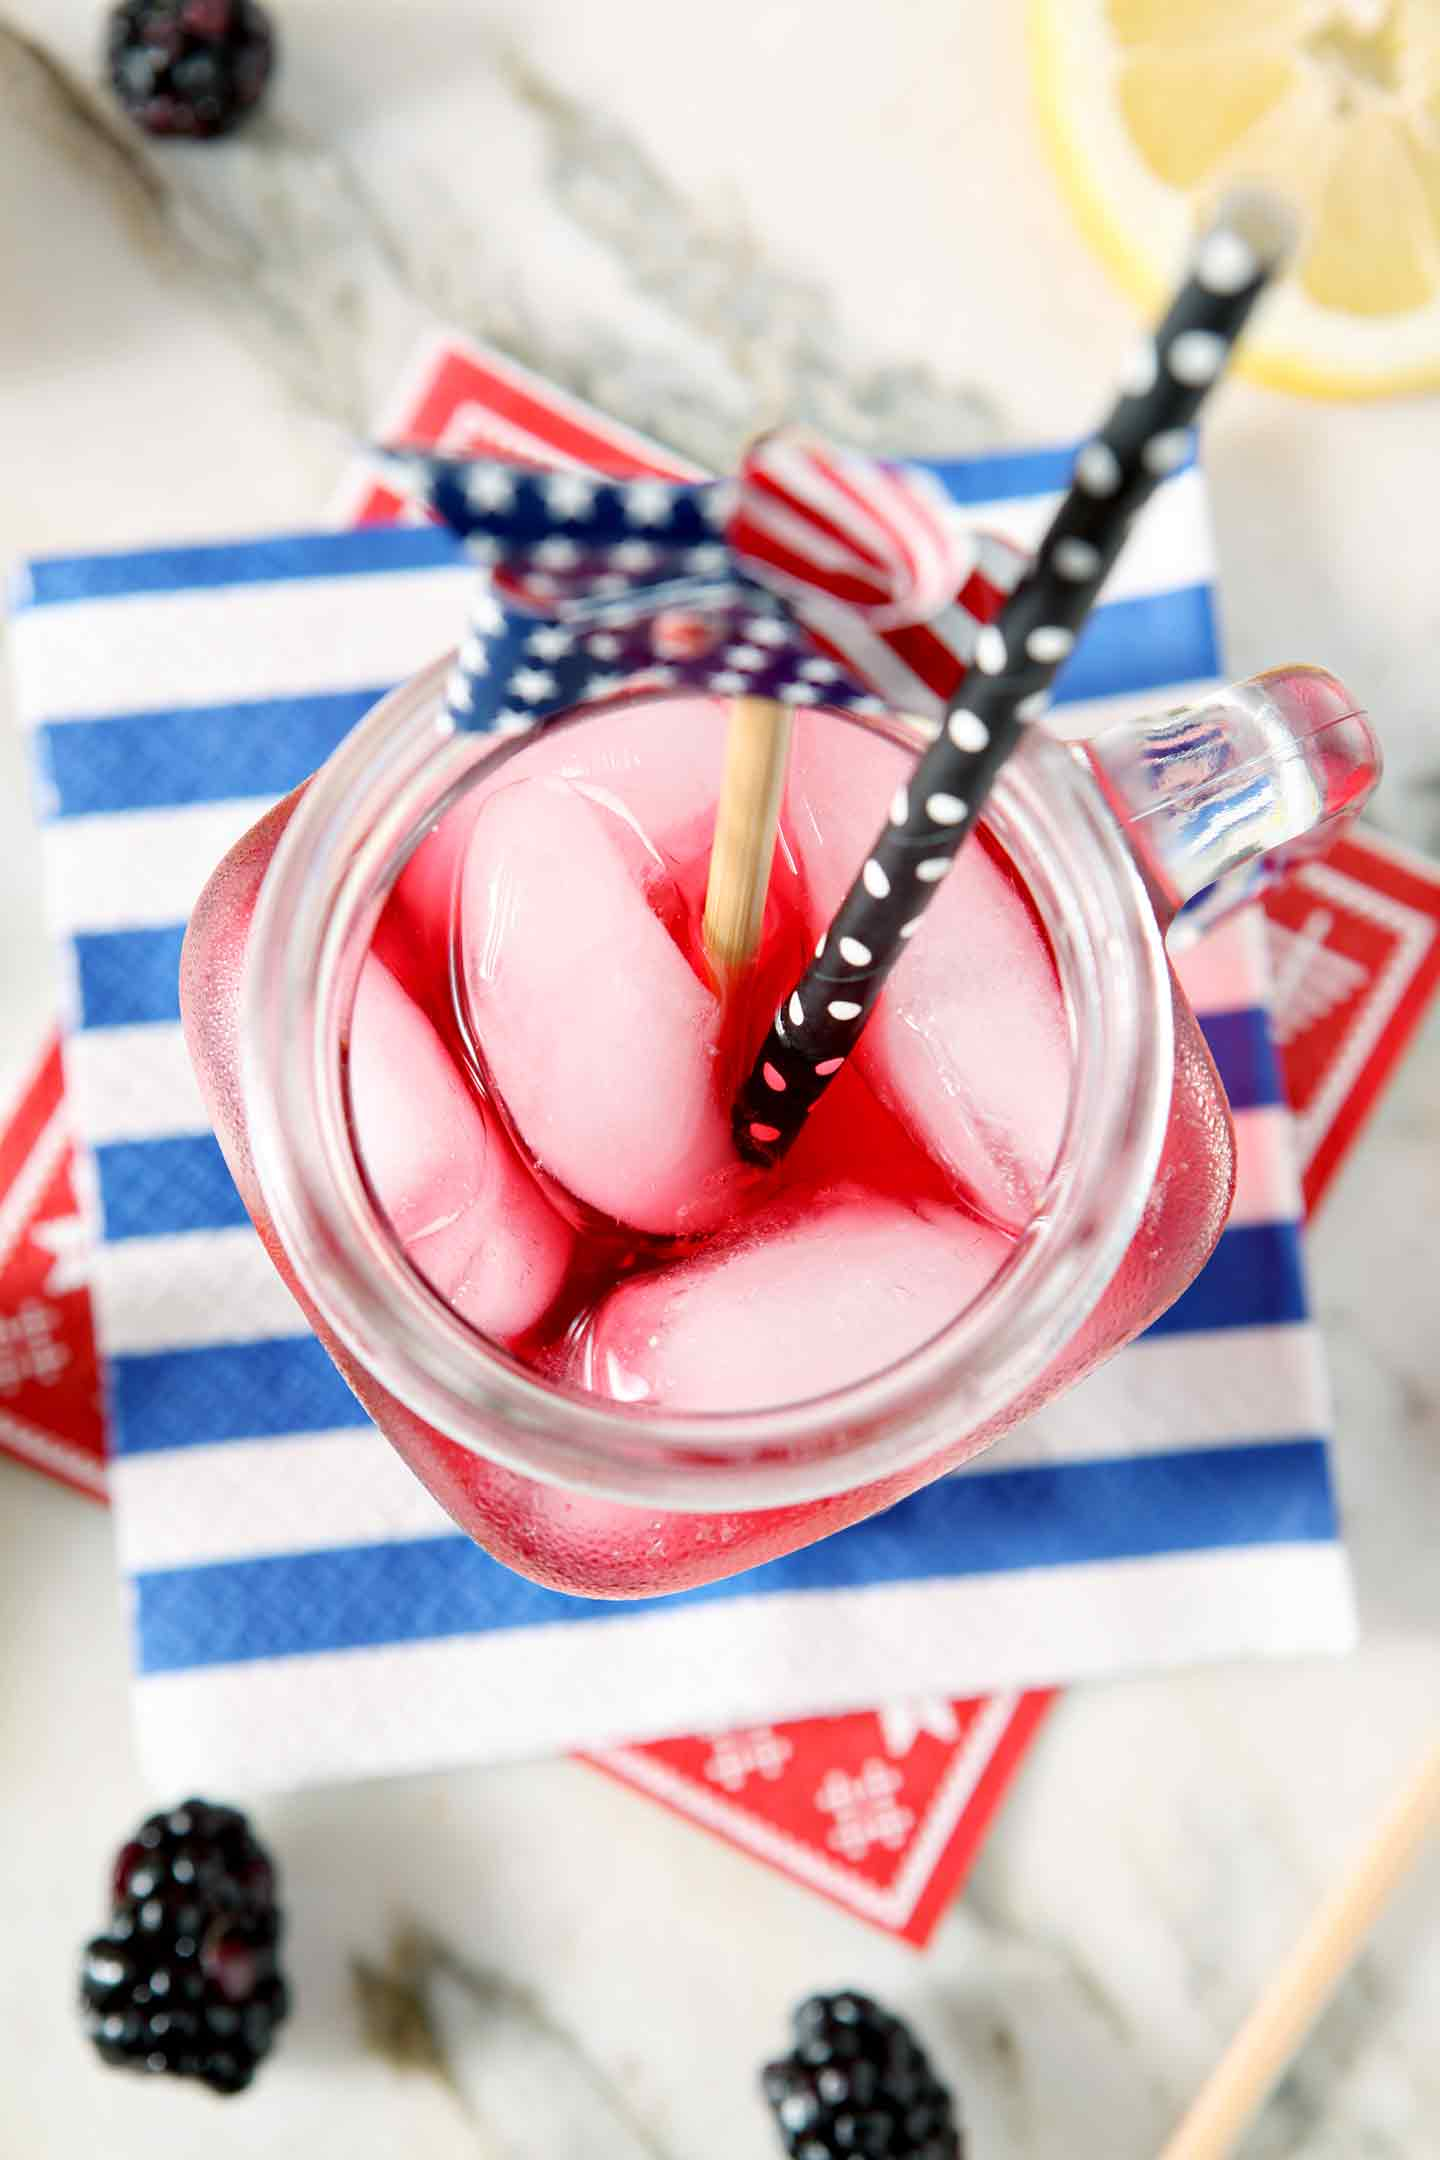 Close up of a mason jar holding Blackberry Tea with a patriotic garnish